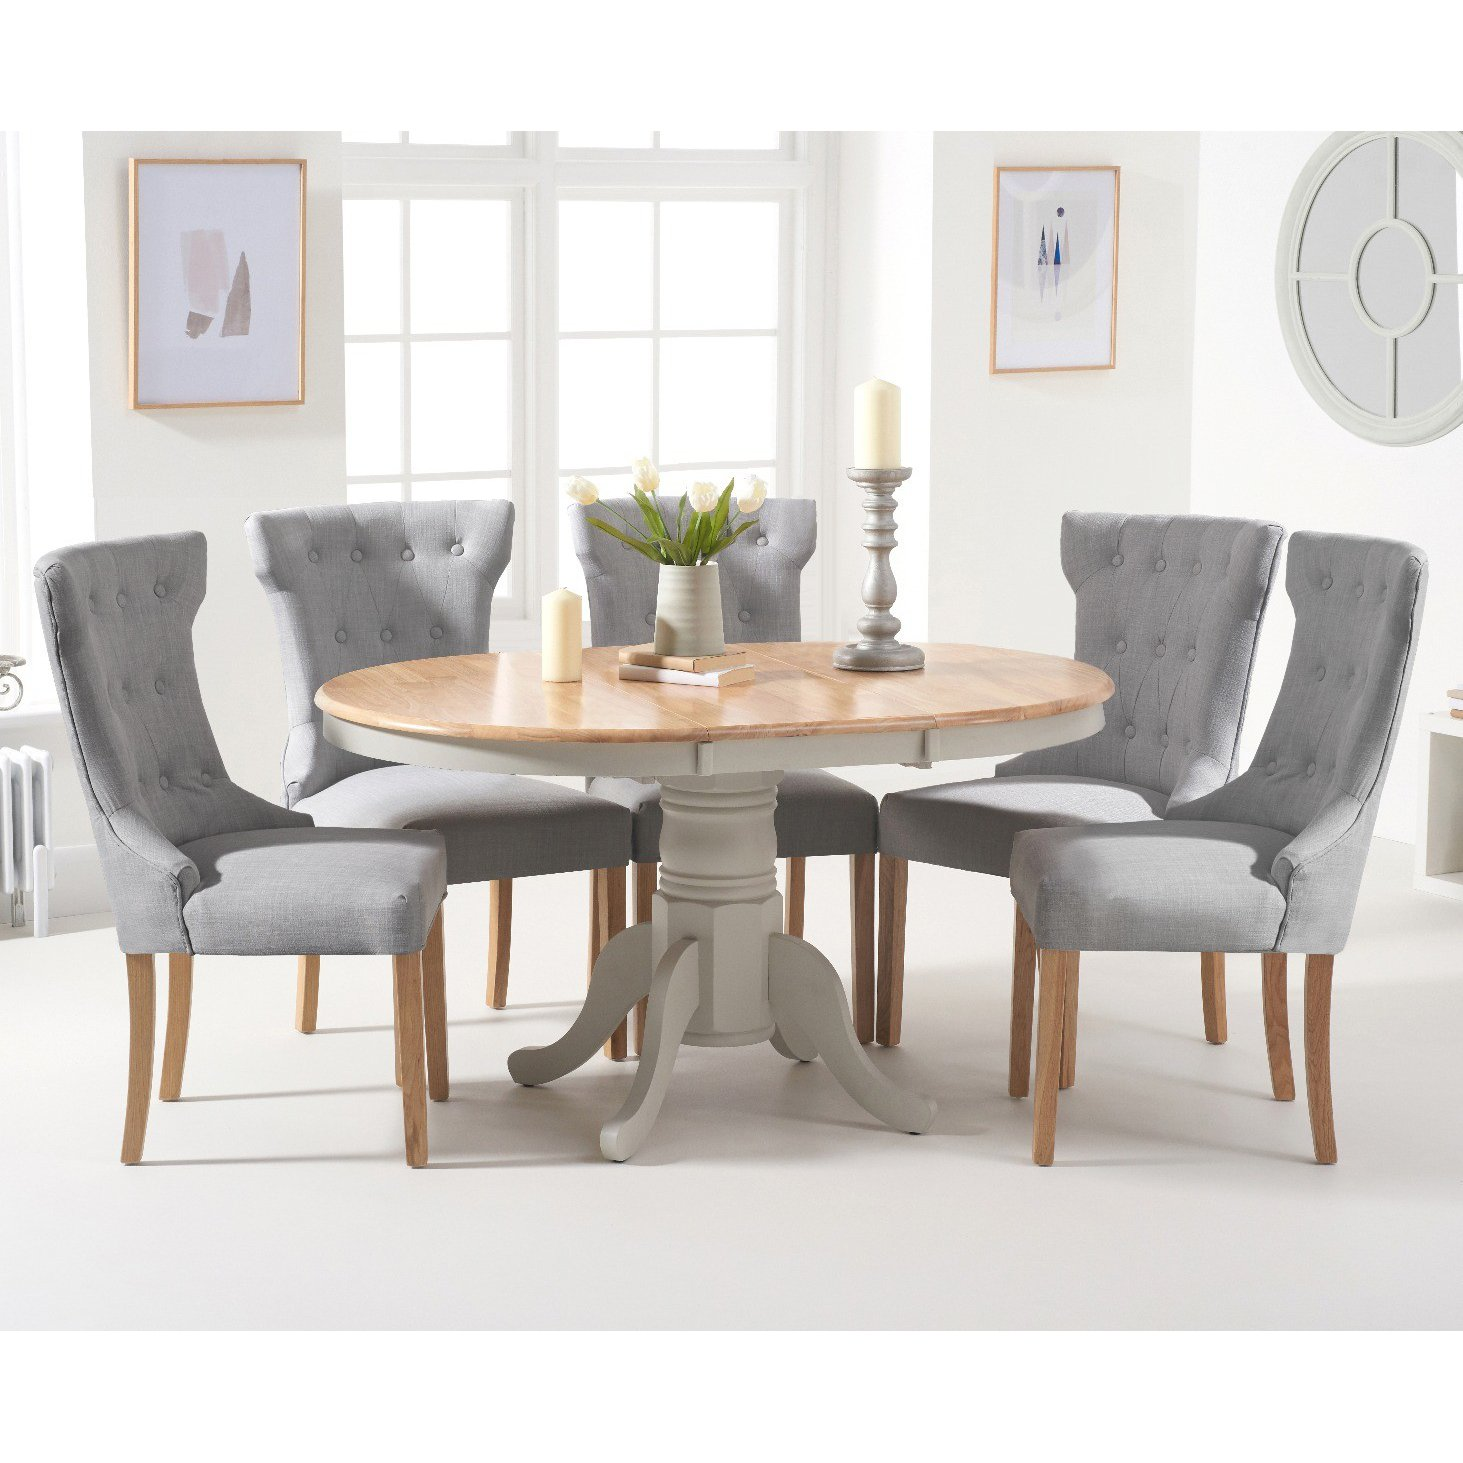 image-Epsom Oak and Grey Pedestal Extending Table with Camille Chairs - Grey, 4 Chairs